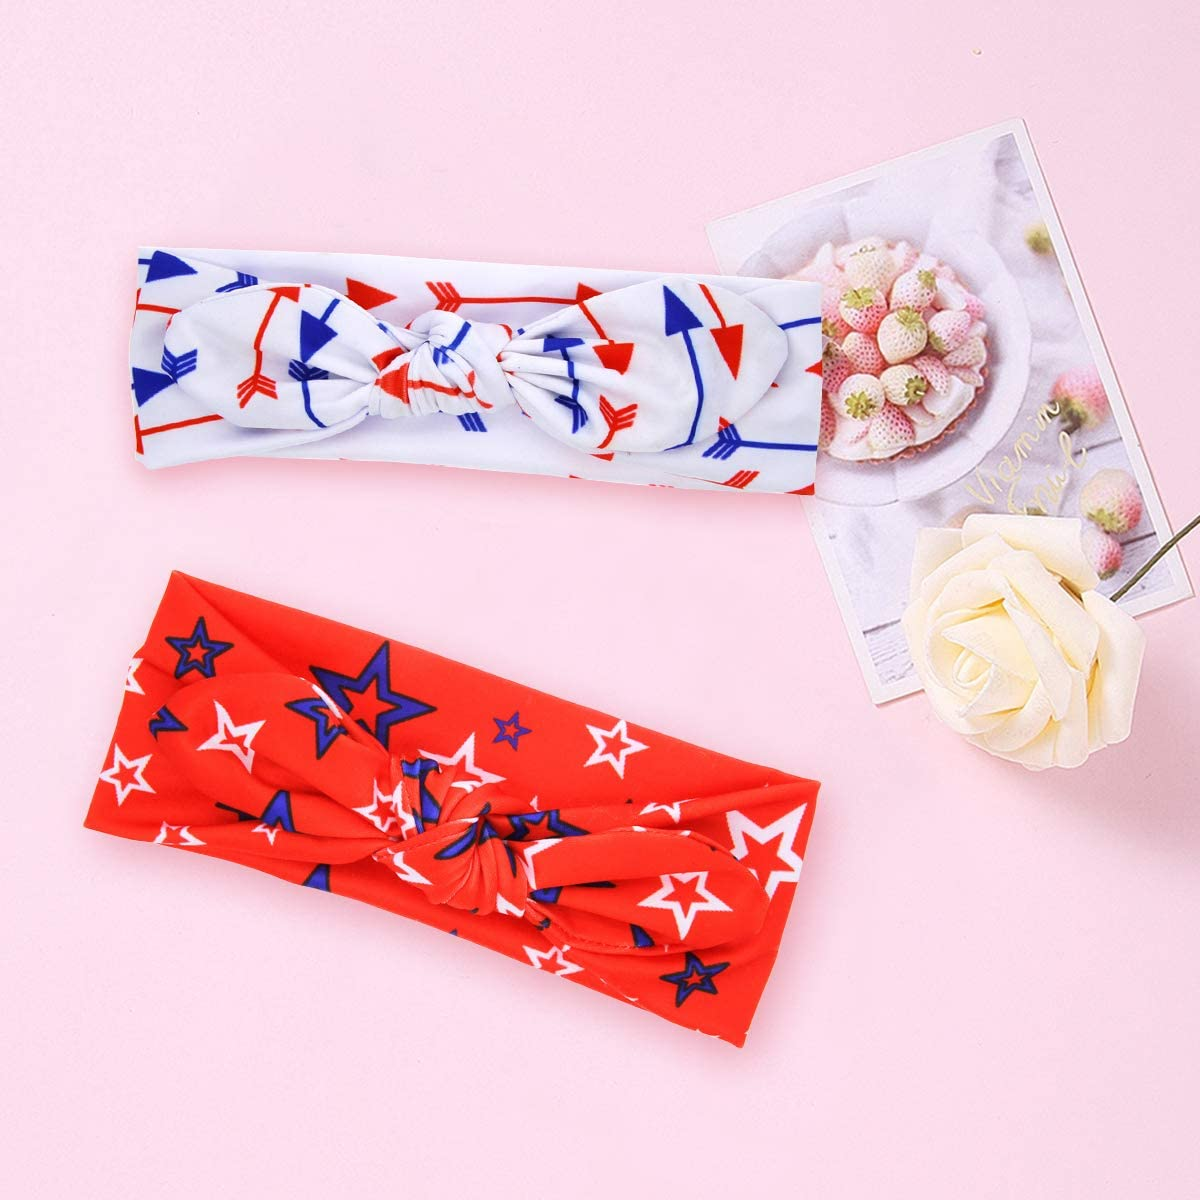 COUXILY Baby Girls Turban Knotted Nylon Headband Infant Toddler Head Bands Newborn Hairbands and Bows Cute Hair Accessories